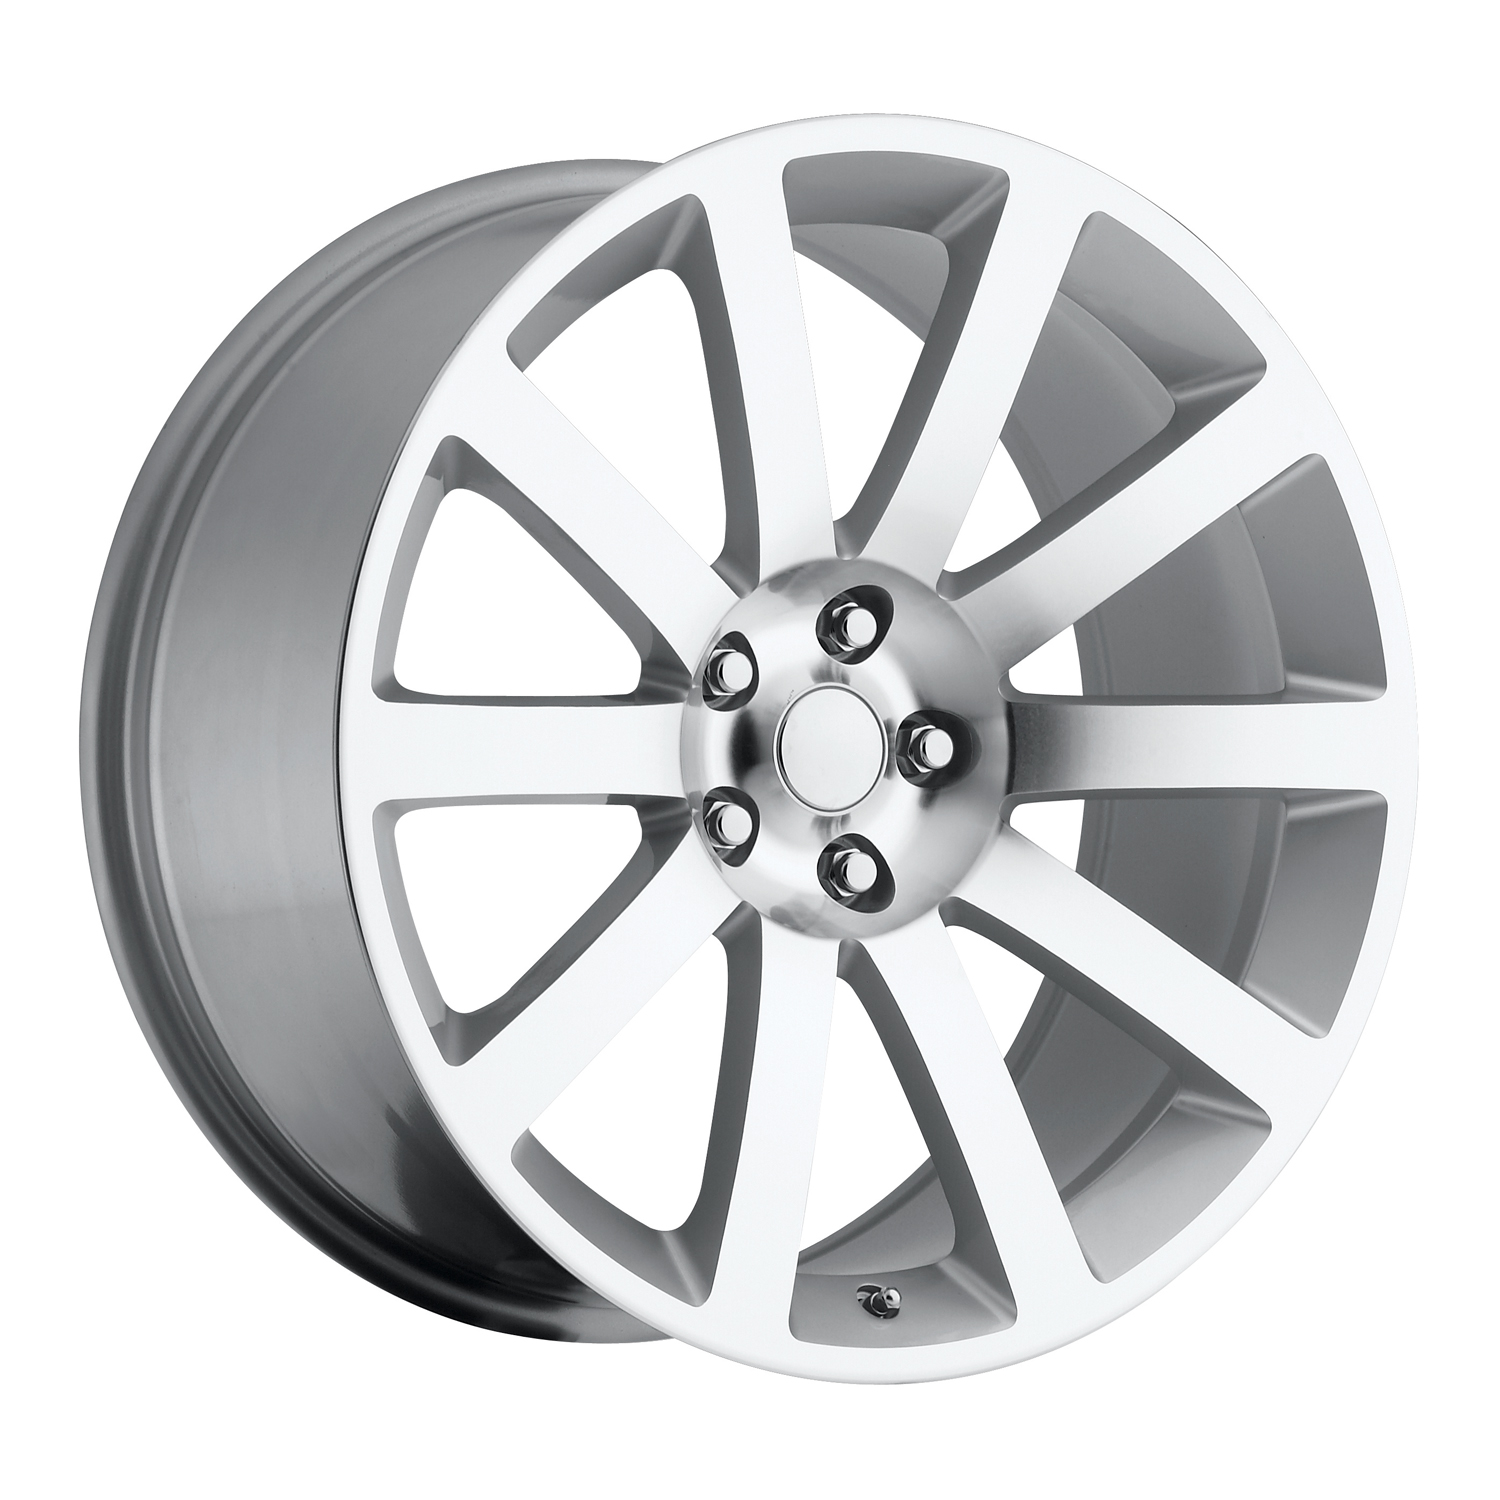 Chrysler 300C 2005-2010 20x9 5x115 +18 - SRT8 Style Wheel - Silver Machine Face With Cap